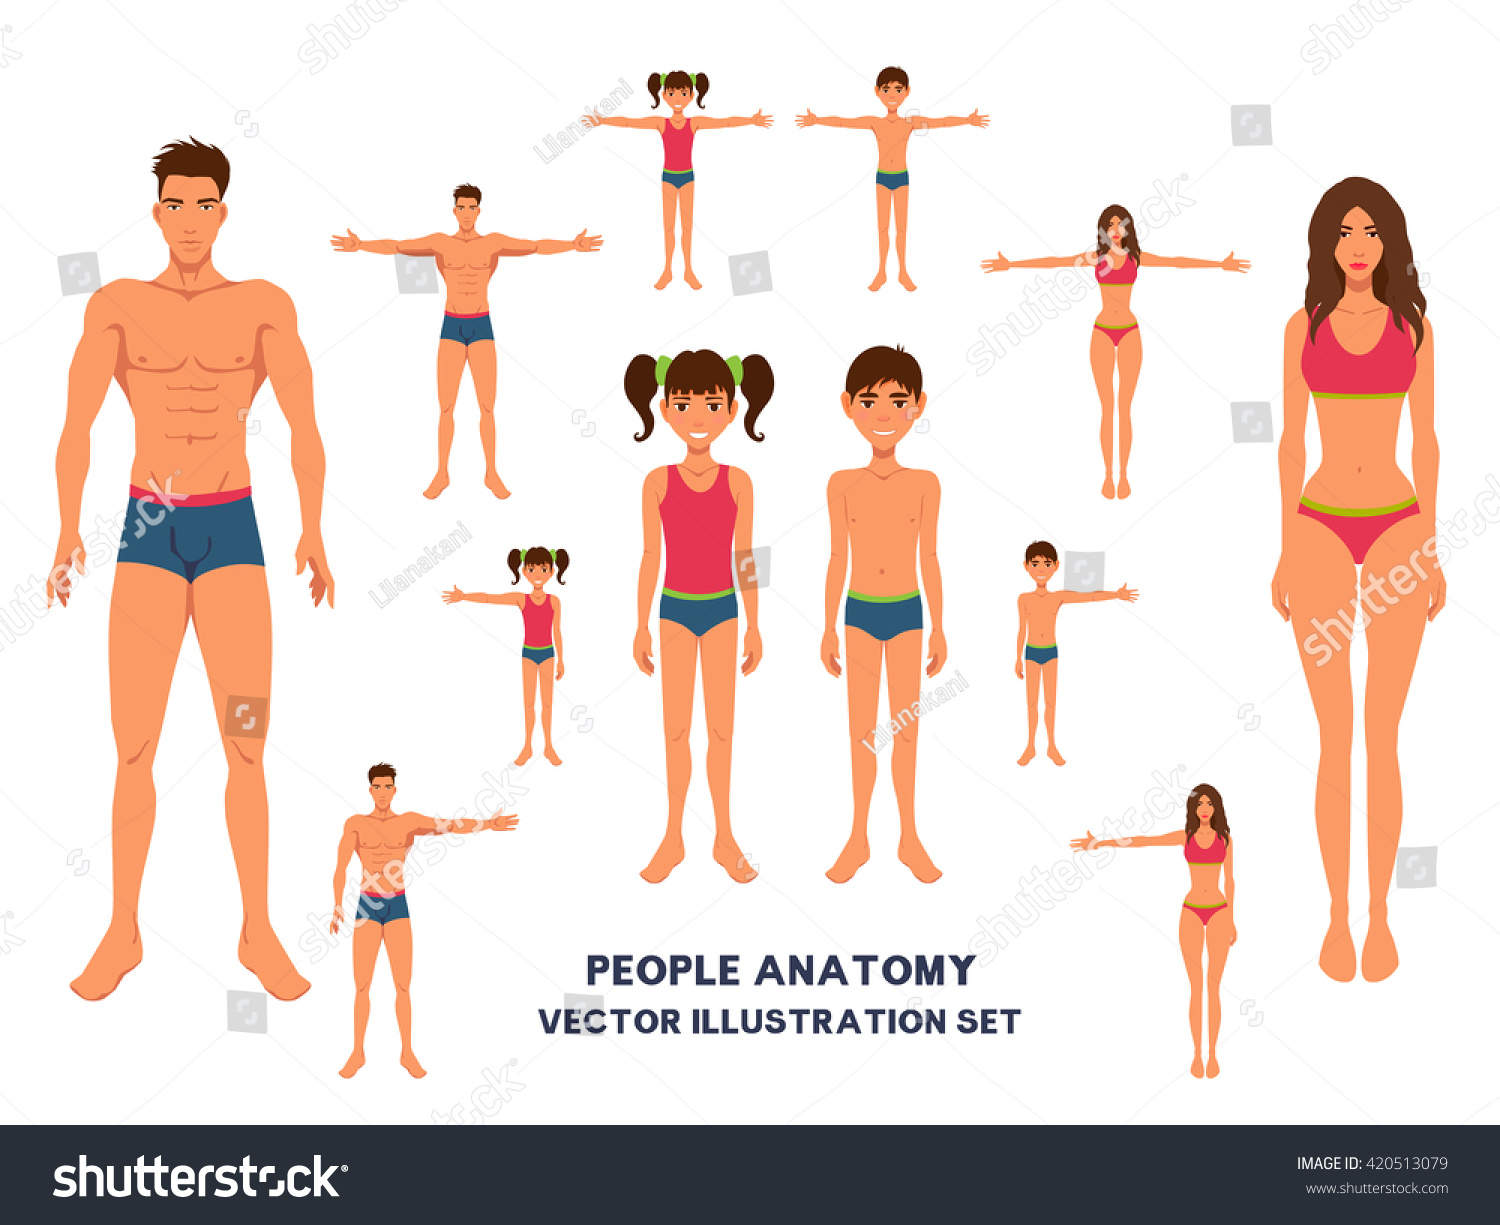 Anatomy Fulllength People Bodies Set Family Stock Vector 420513079